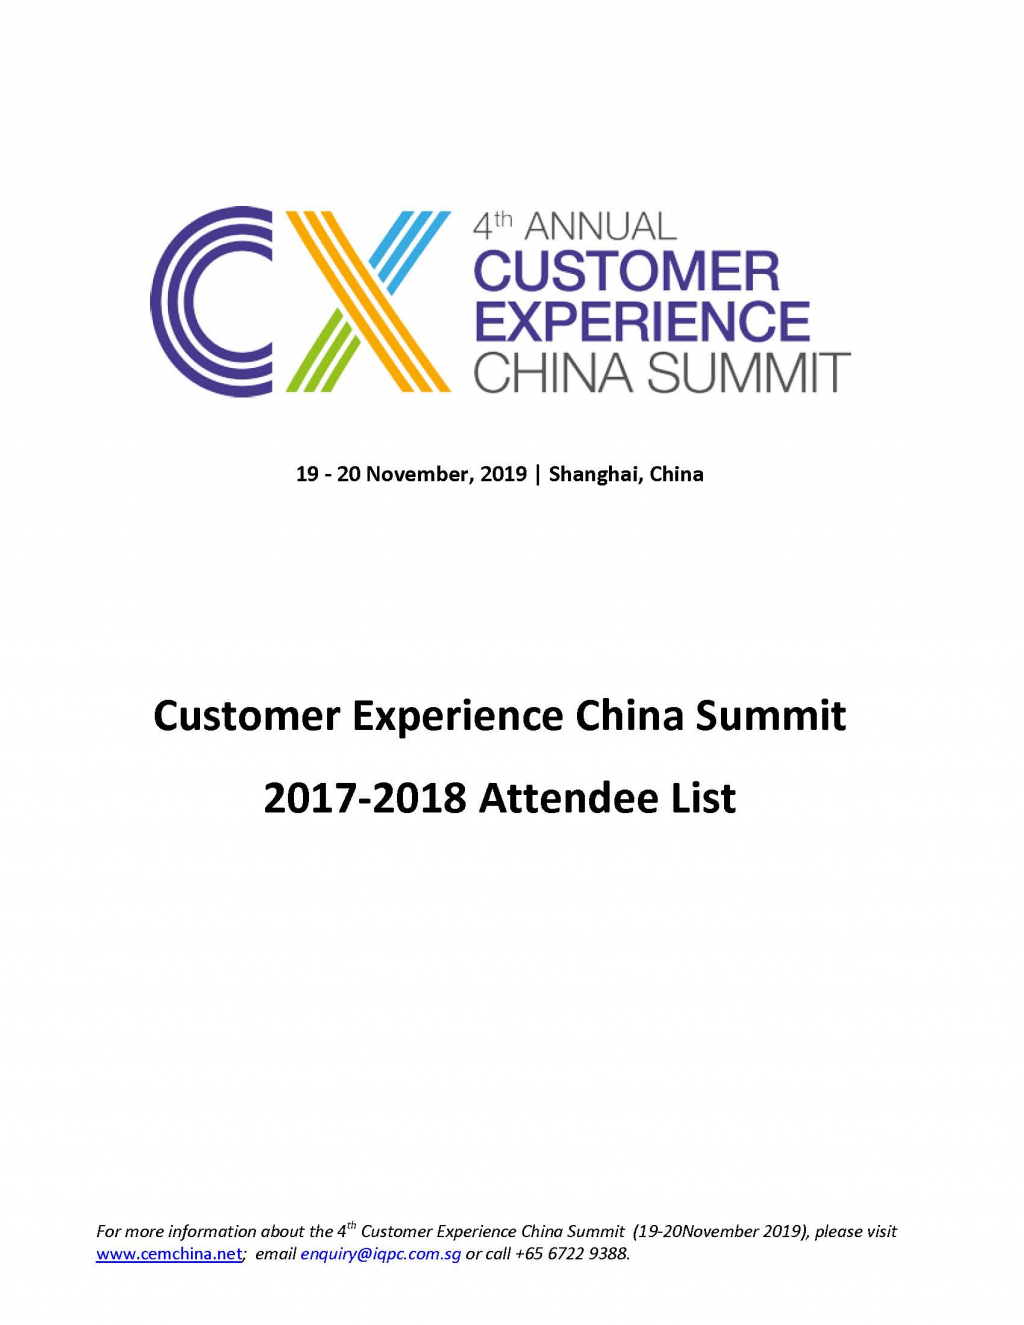 View 2017-2018 Attendee List - Customer Experience China Summit